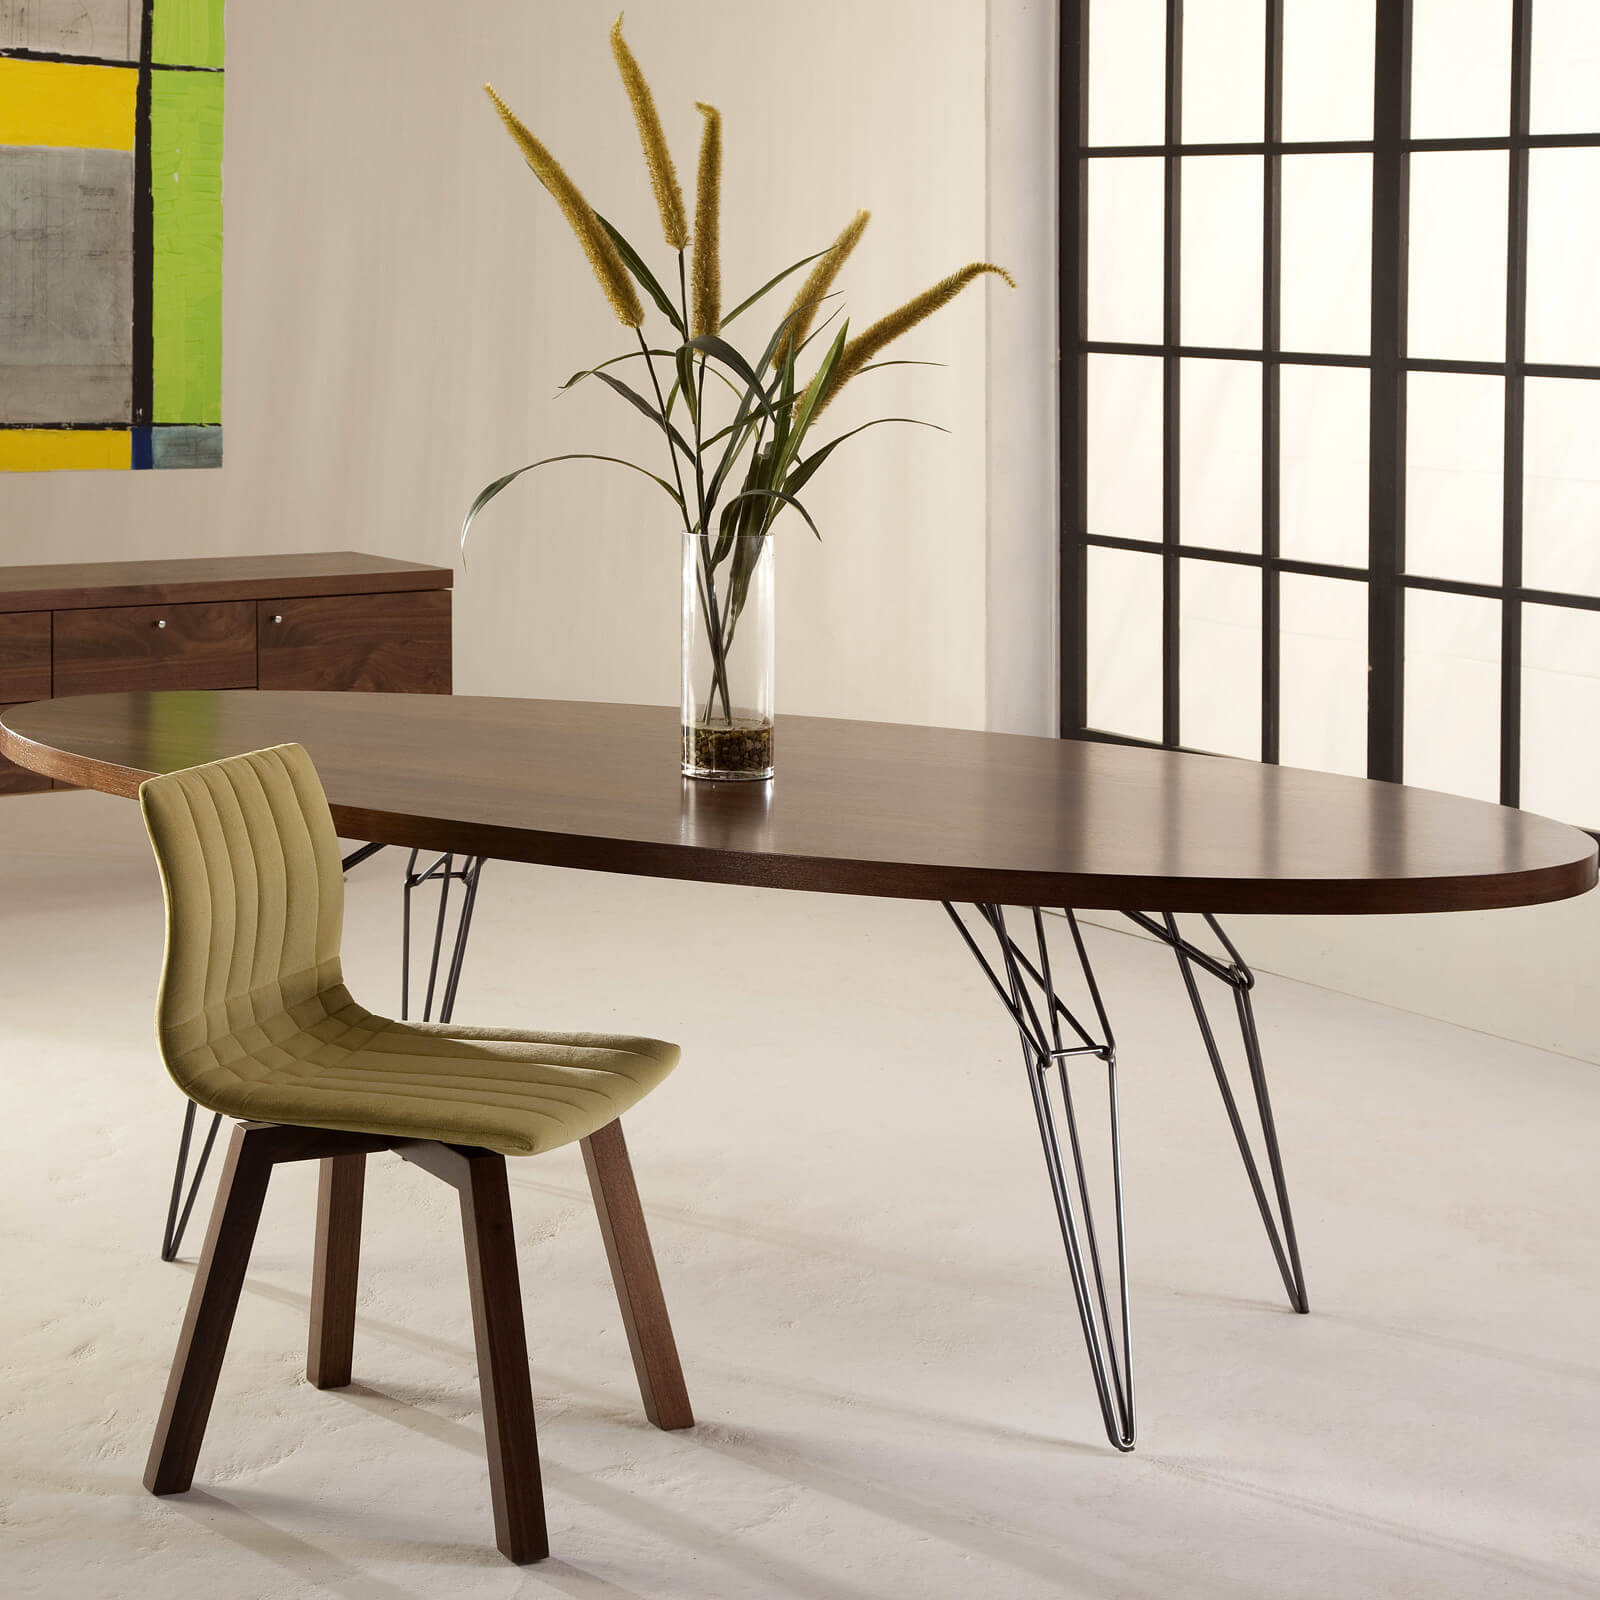 Our second oval table example is a modern minimalist design, with a narrow, long body over wire frame legs.